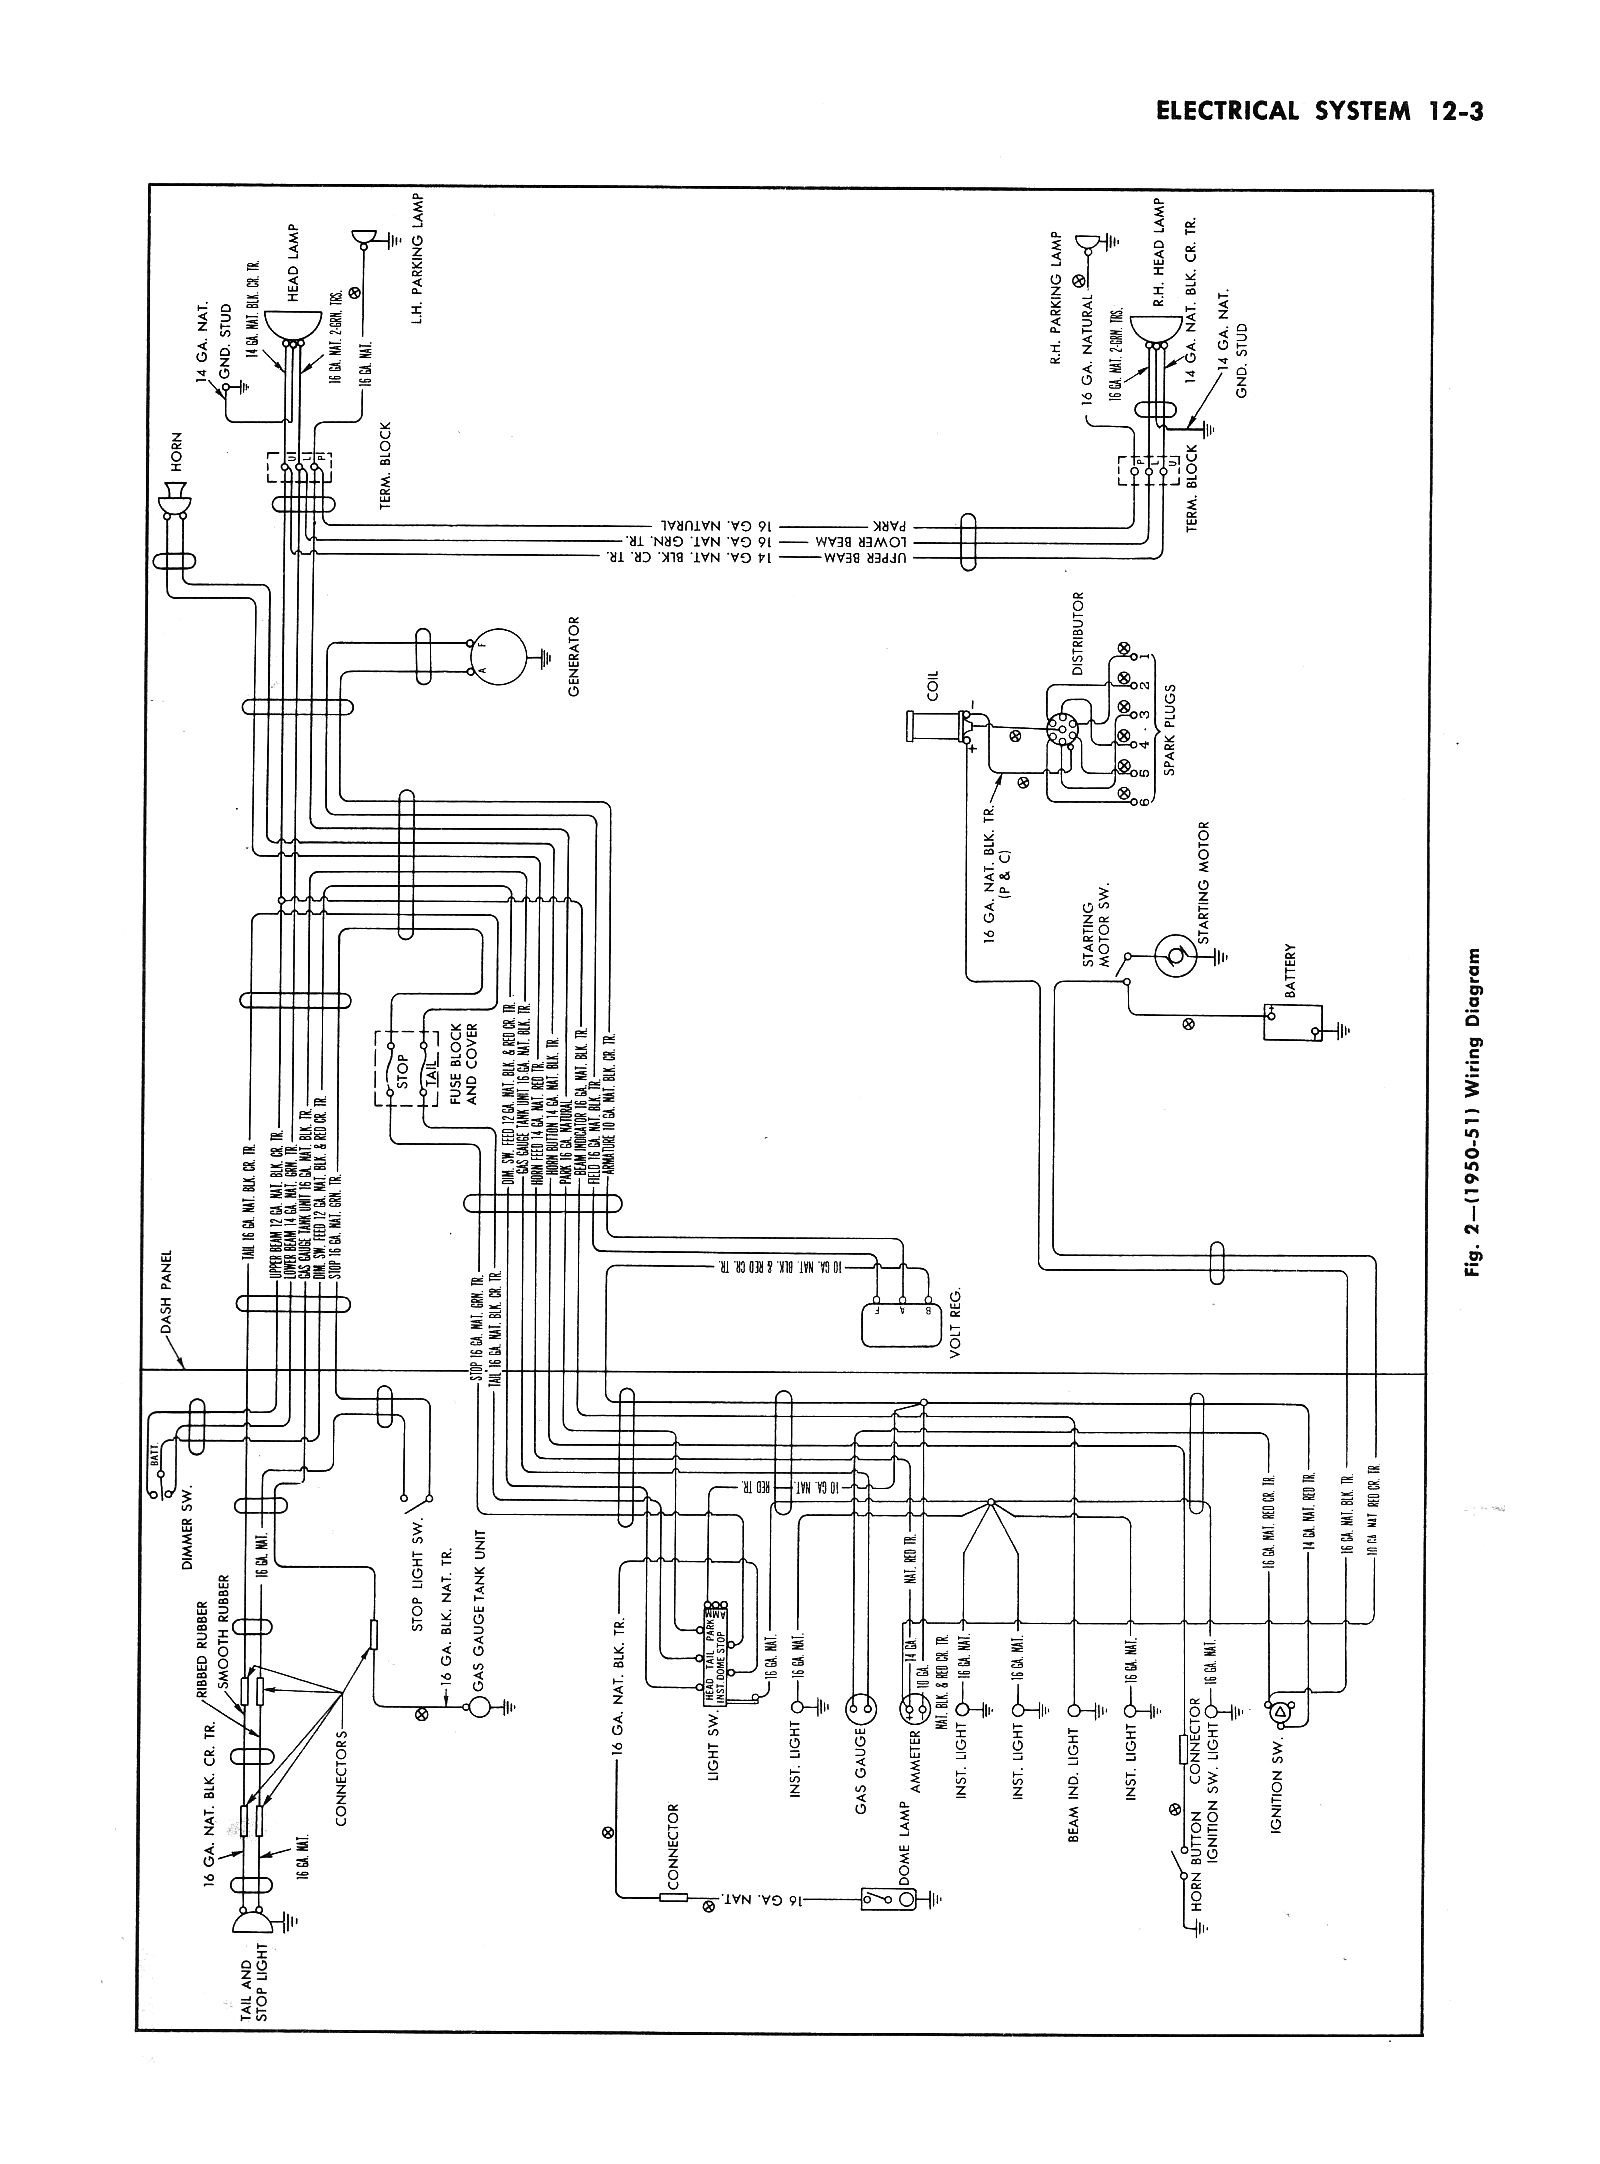 1951 chevy truck wiring harness diagram block and schematic diagrams u2022  rh lazysupply co 1989 Chevy S10 Tail Light Wiring Diagram 1989 Chevy S10  Tail ...